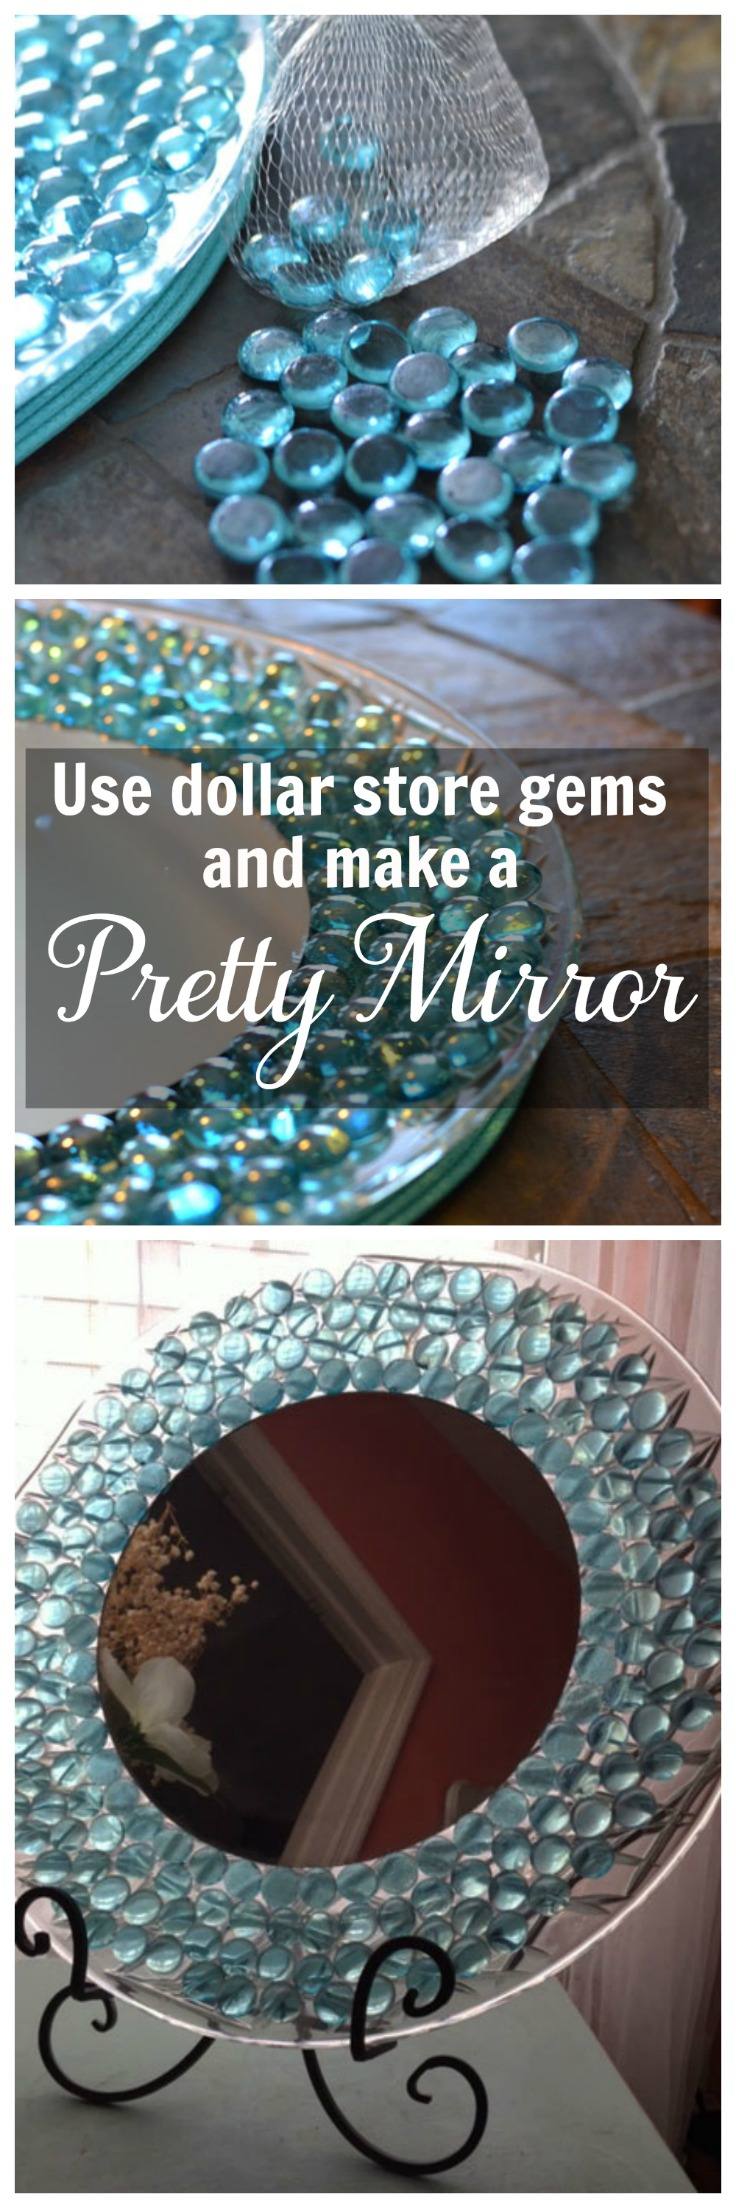 Use dollar store gems to make a pretty mirror